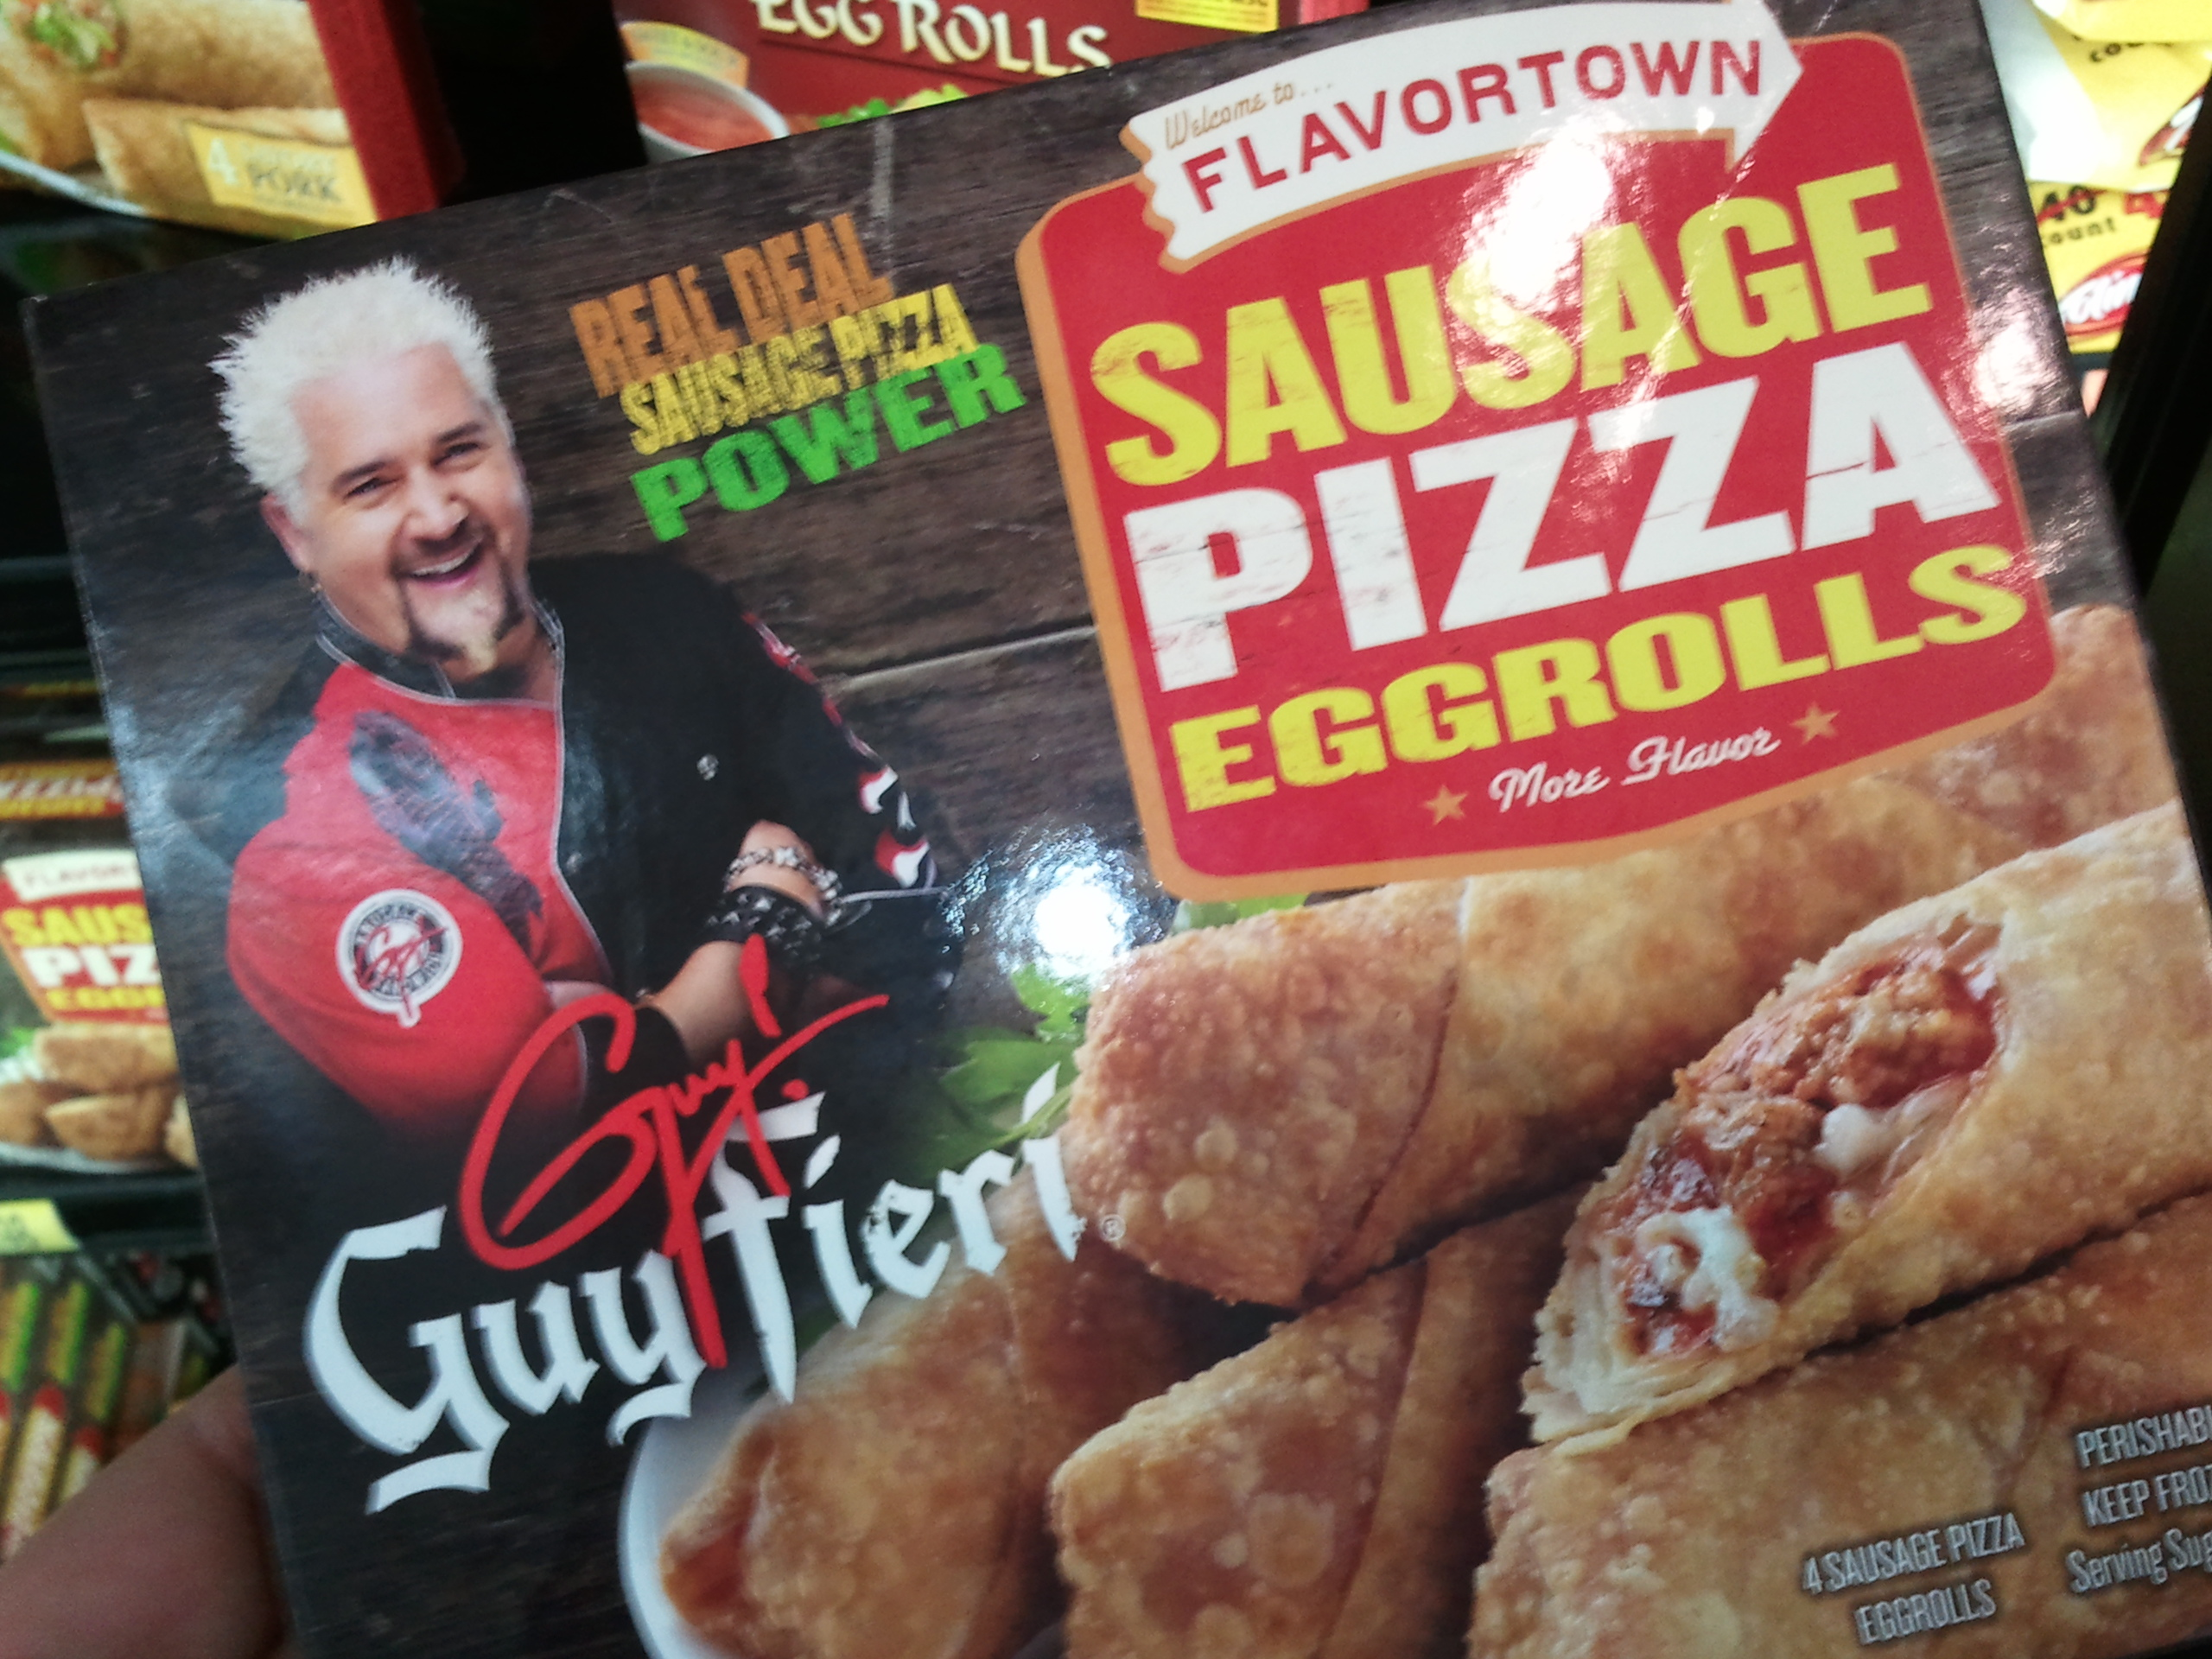 Guy Fieri, proud sponsor of Flavortown sausage pizza eggrolls